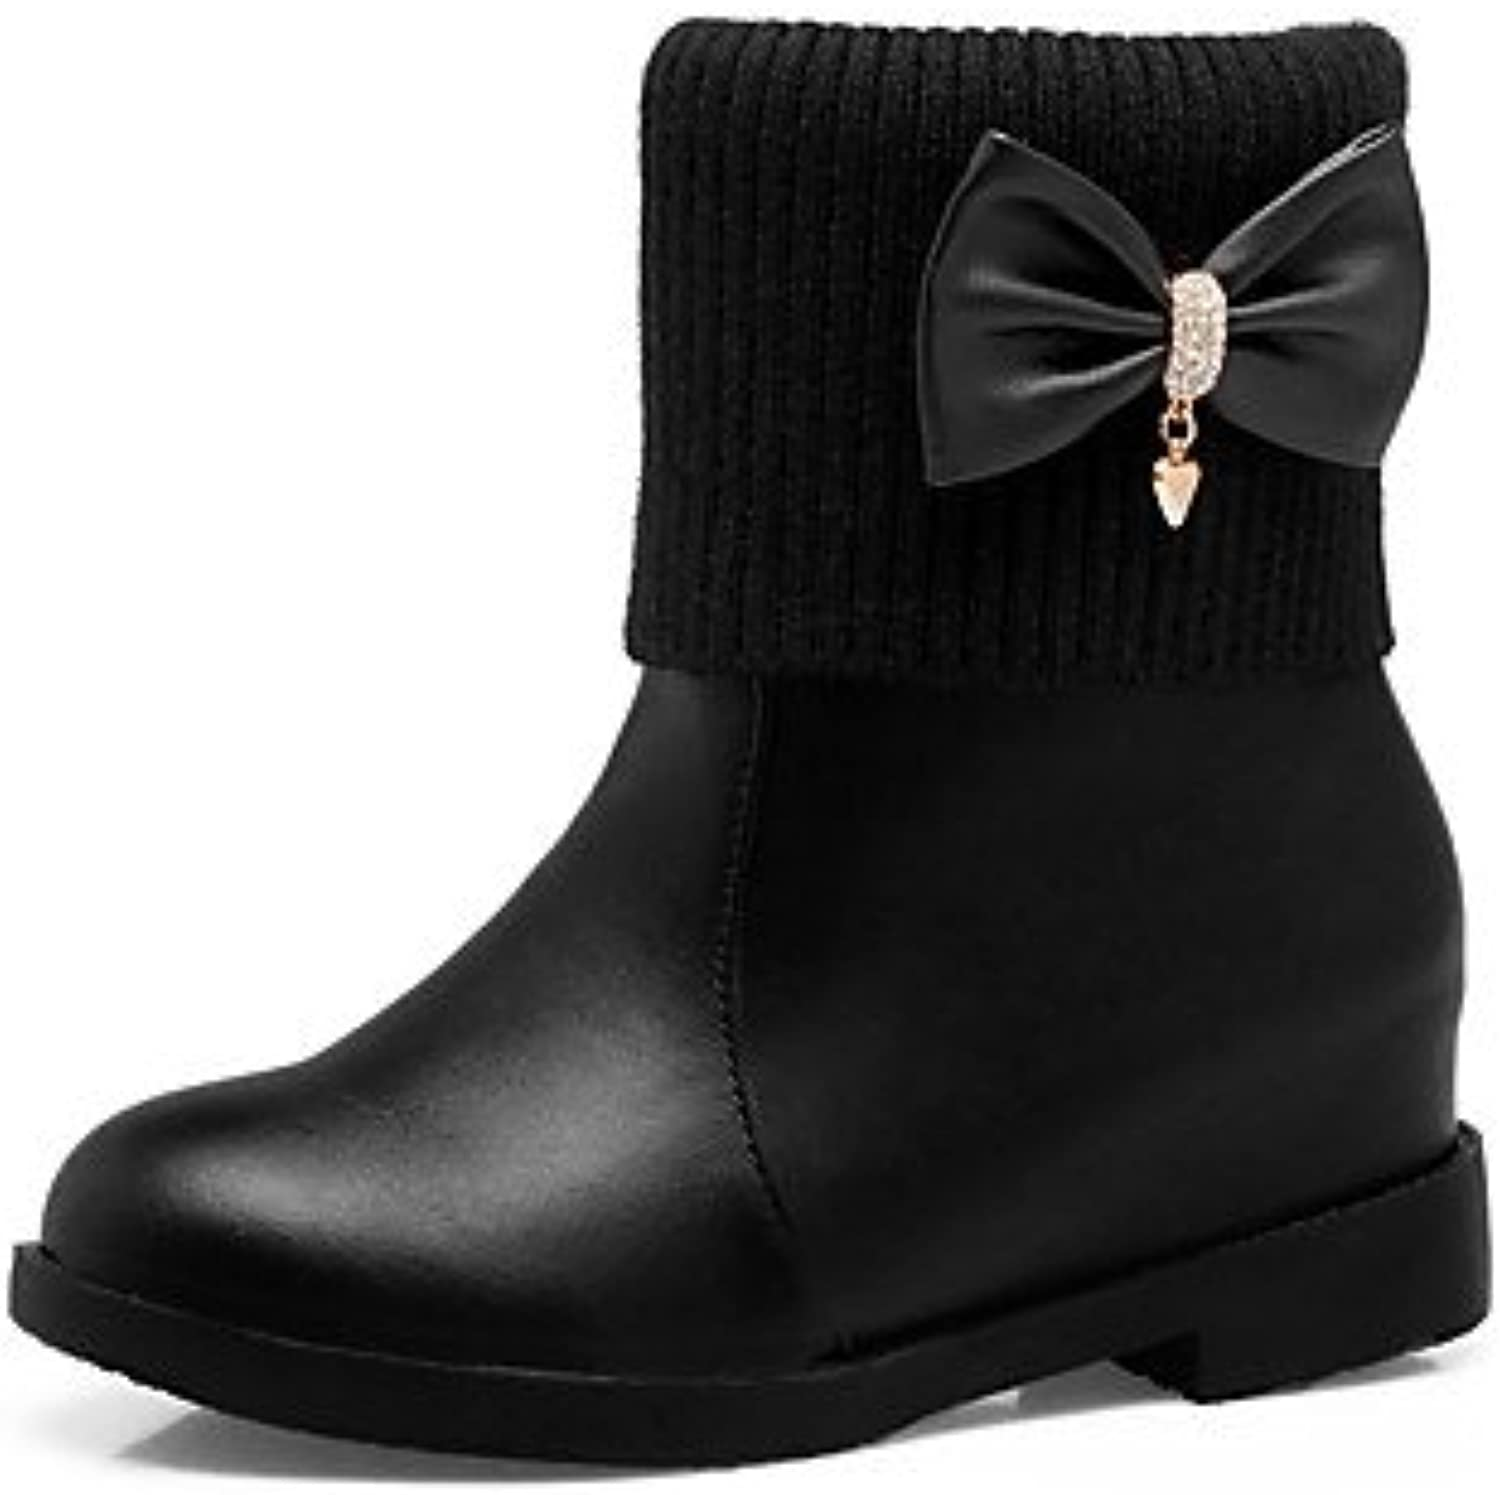 Women shoes Leatherette Fall Winter Snow Fashion Low Heel Chunky Heel Round Toe Booties Ankle Rhinestone Bowknot